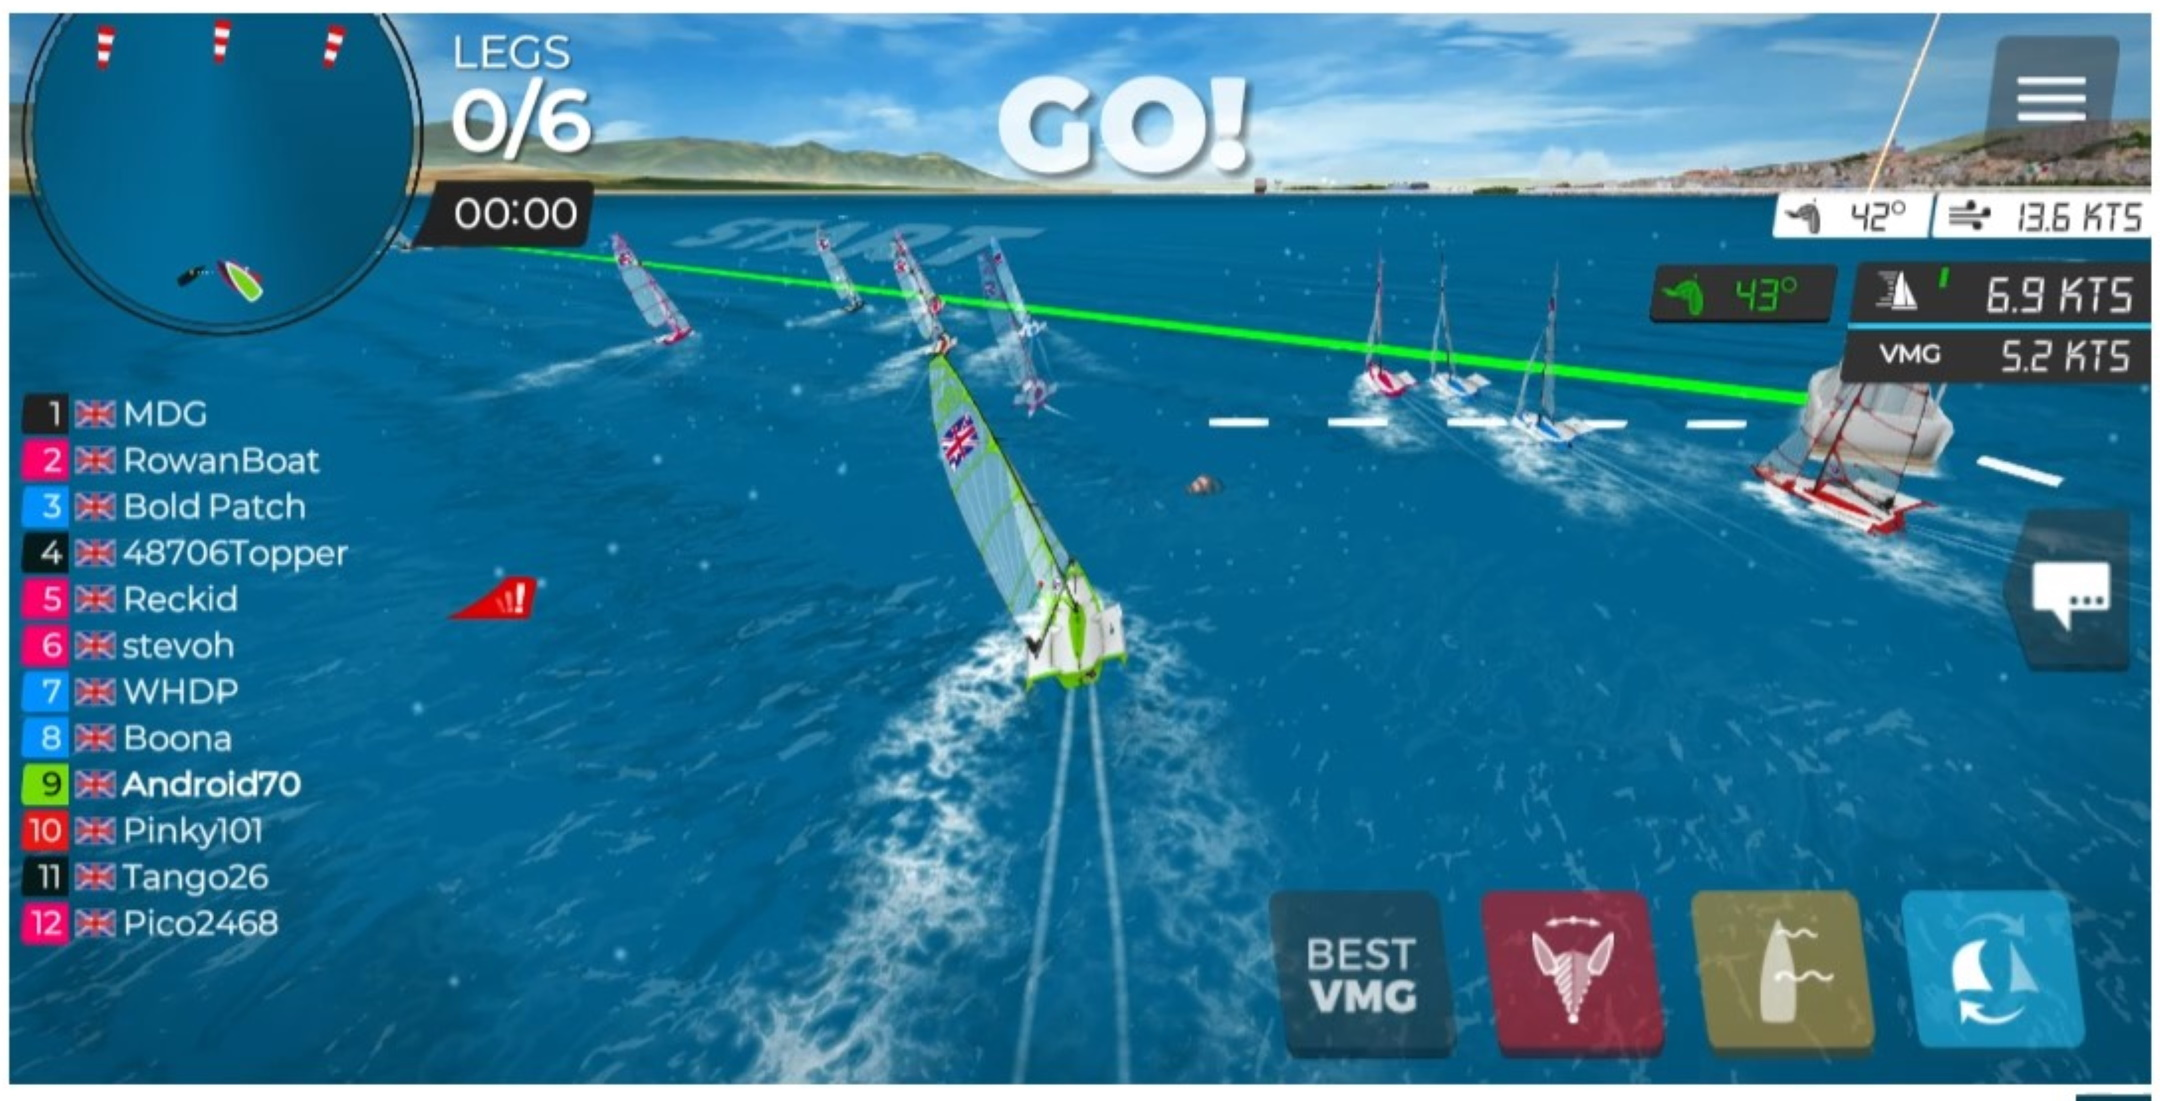 DQSC Virtual Regatta Race 3 Start 29th April 2020